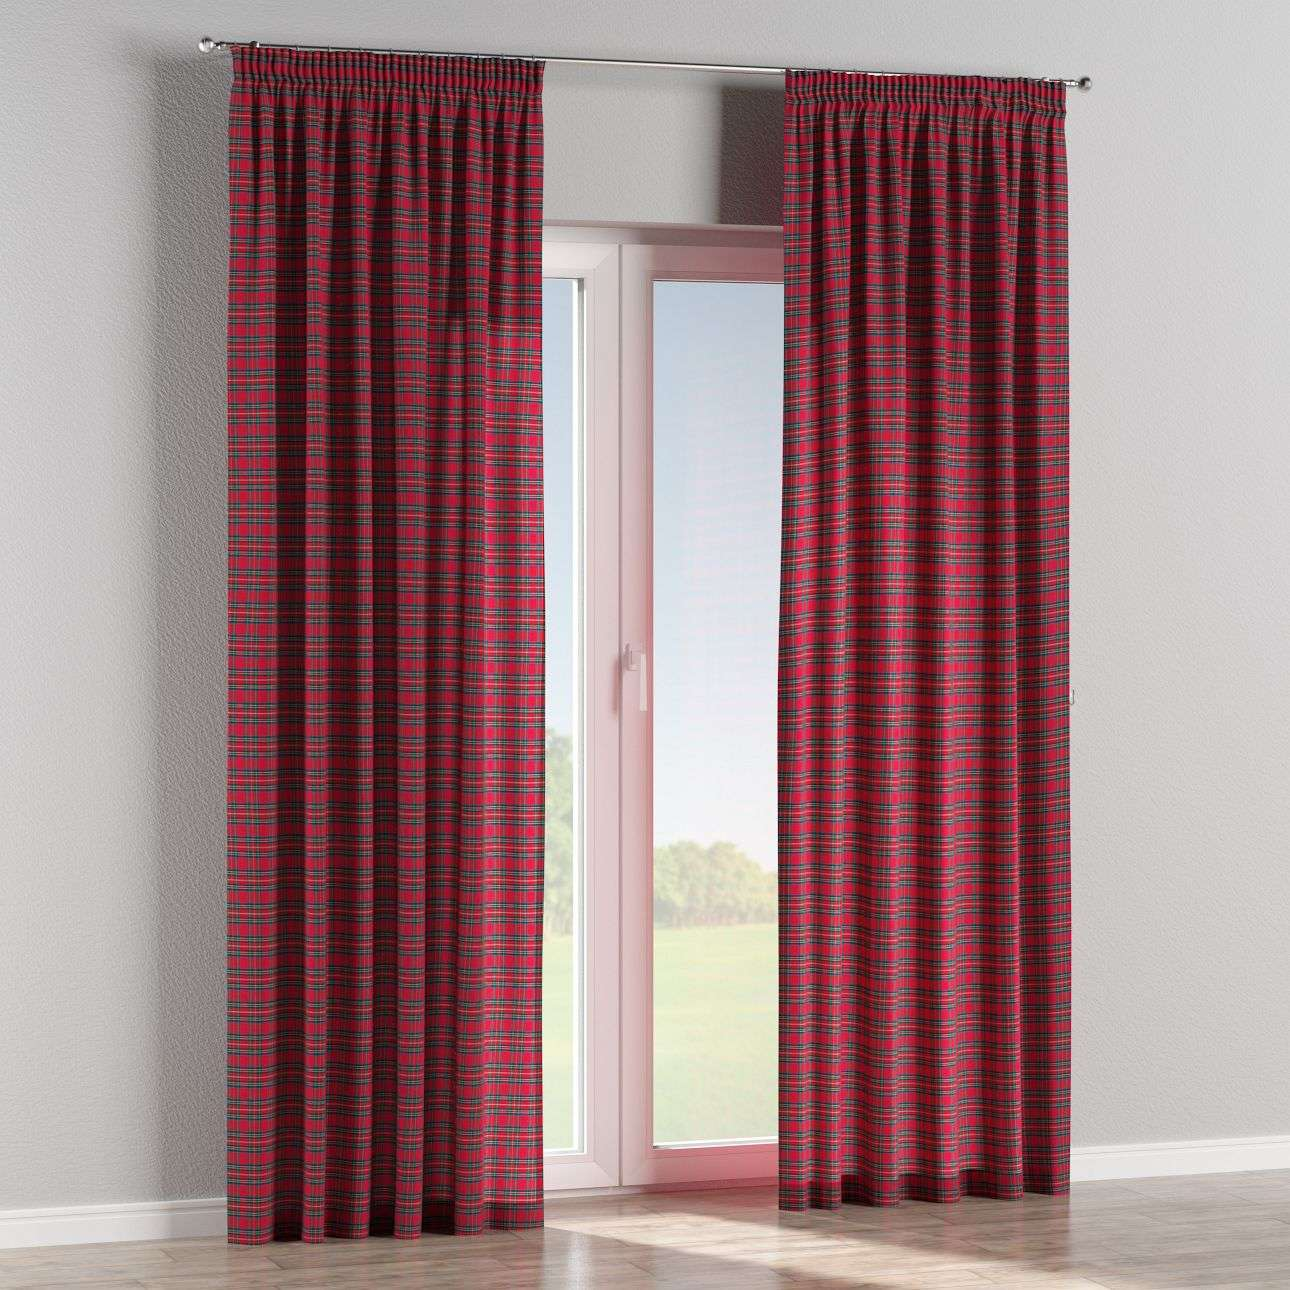 Pencil pleat curtains 130 x 260 cm (51 x 102 inch) in collection Bristol, fabric: 126-29